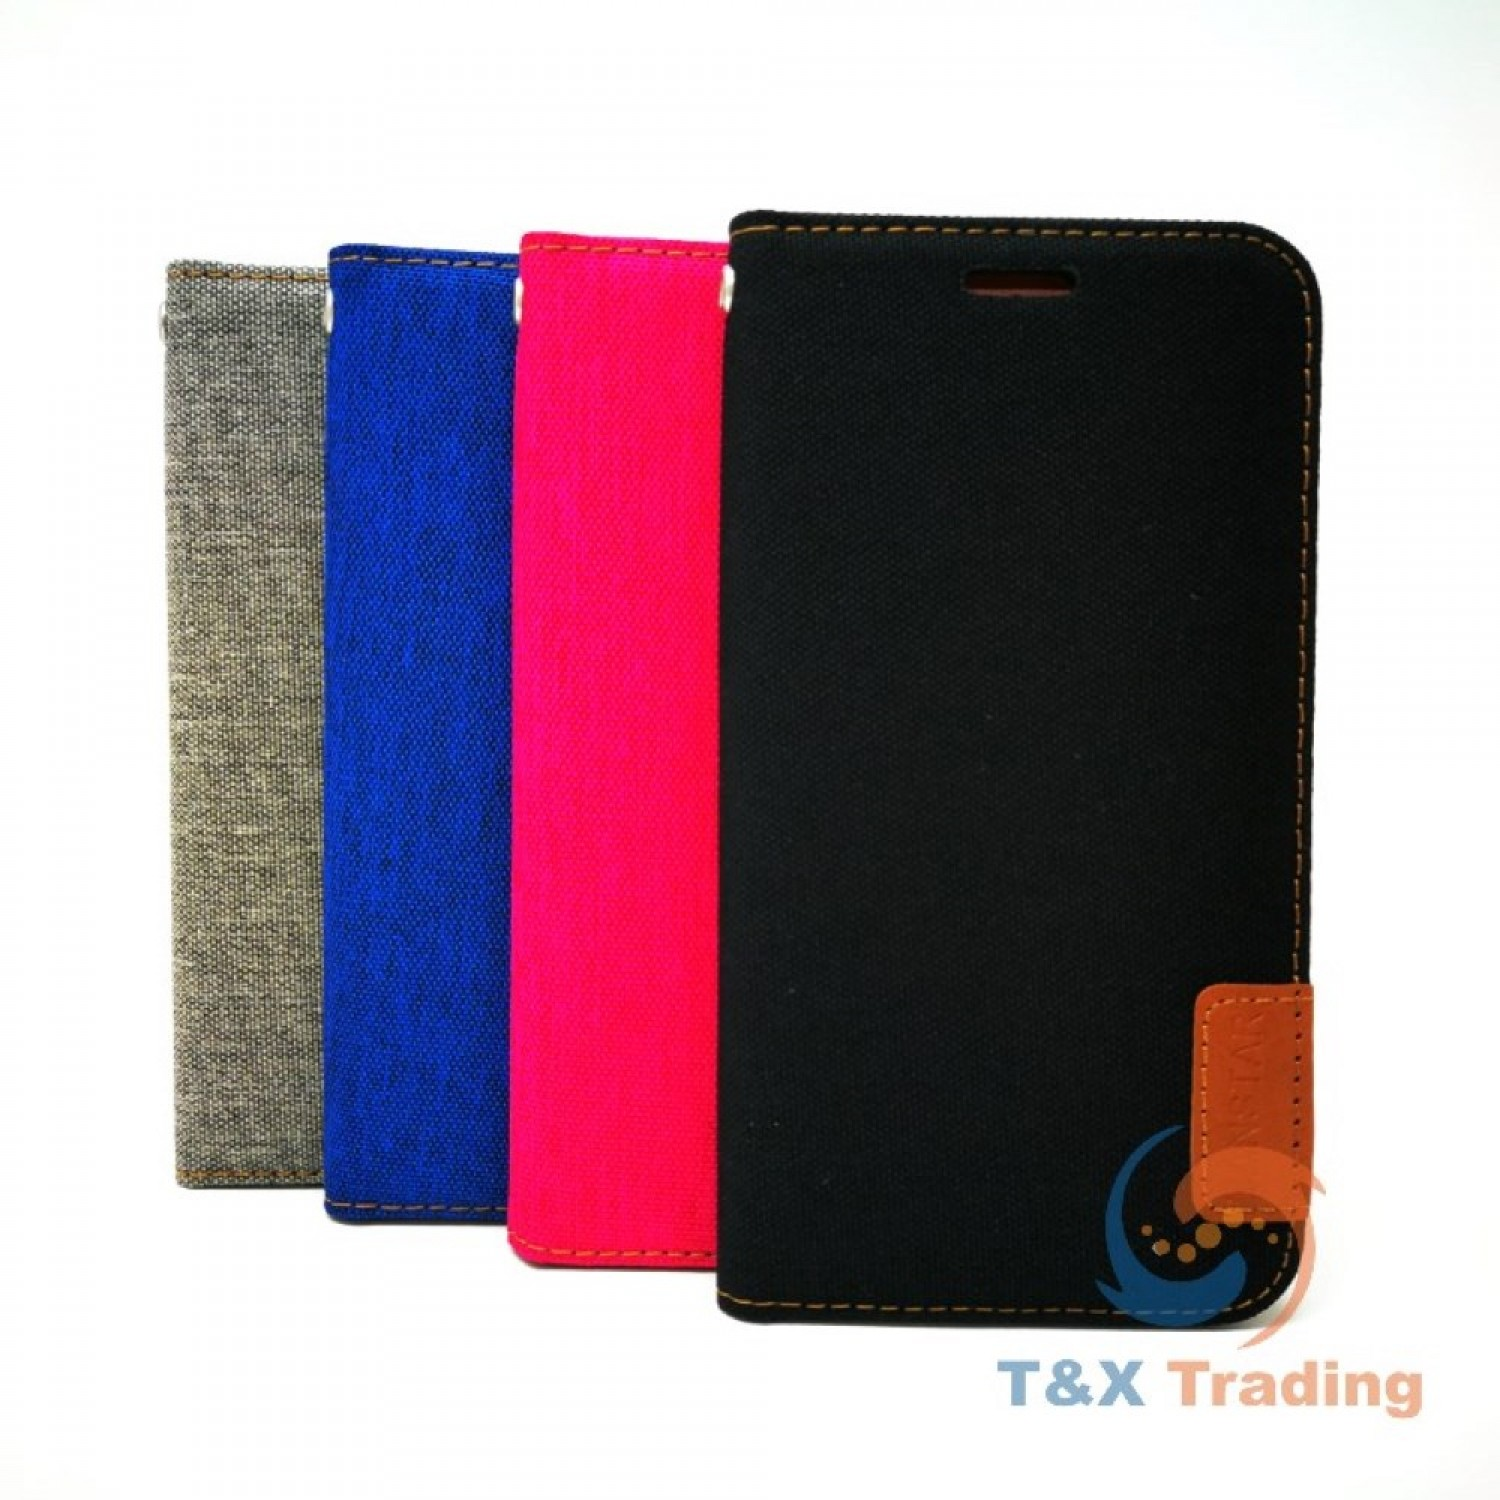 Apple iPhone 6 Plus / 7 Plus / 8 Plus - TanStar Fabric Wallet Case with Magnetic Closure